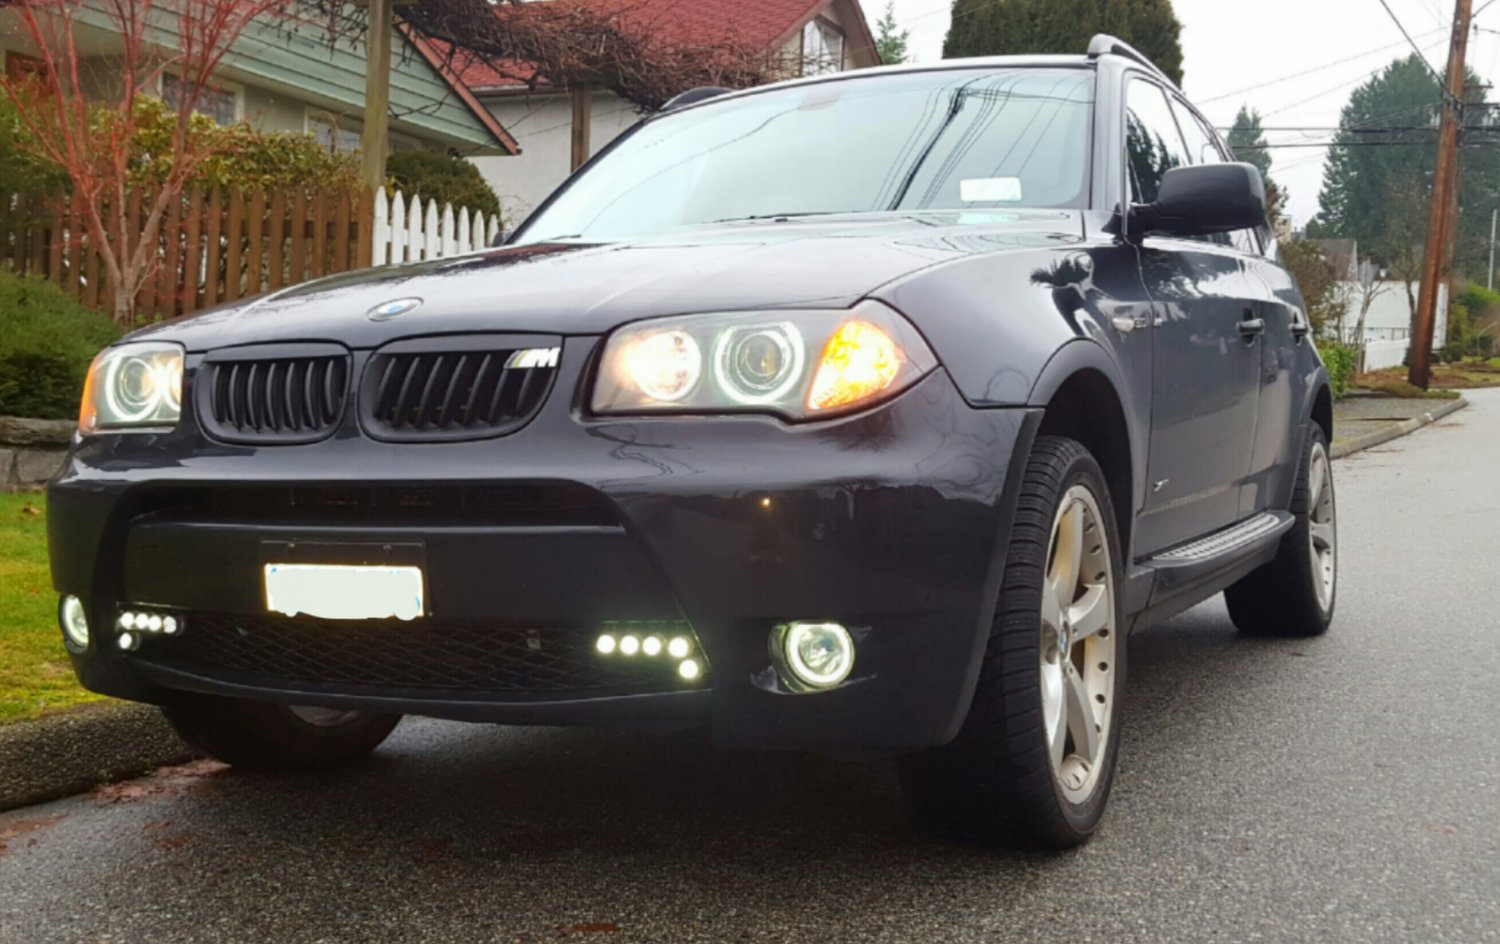 2004 2005 bmw x3 us halo fog lamp driving light kit e83 angel eyes. Black Bedroom Furniture Sets. Home Design Ideas